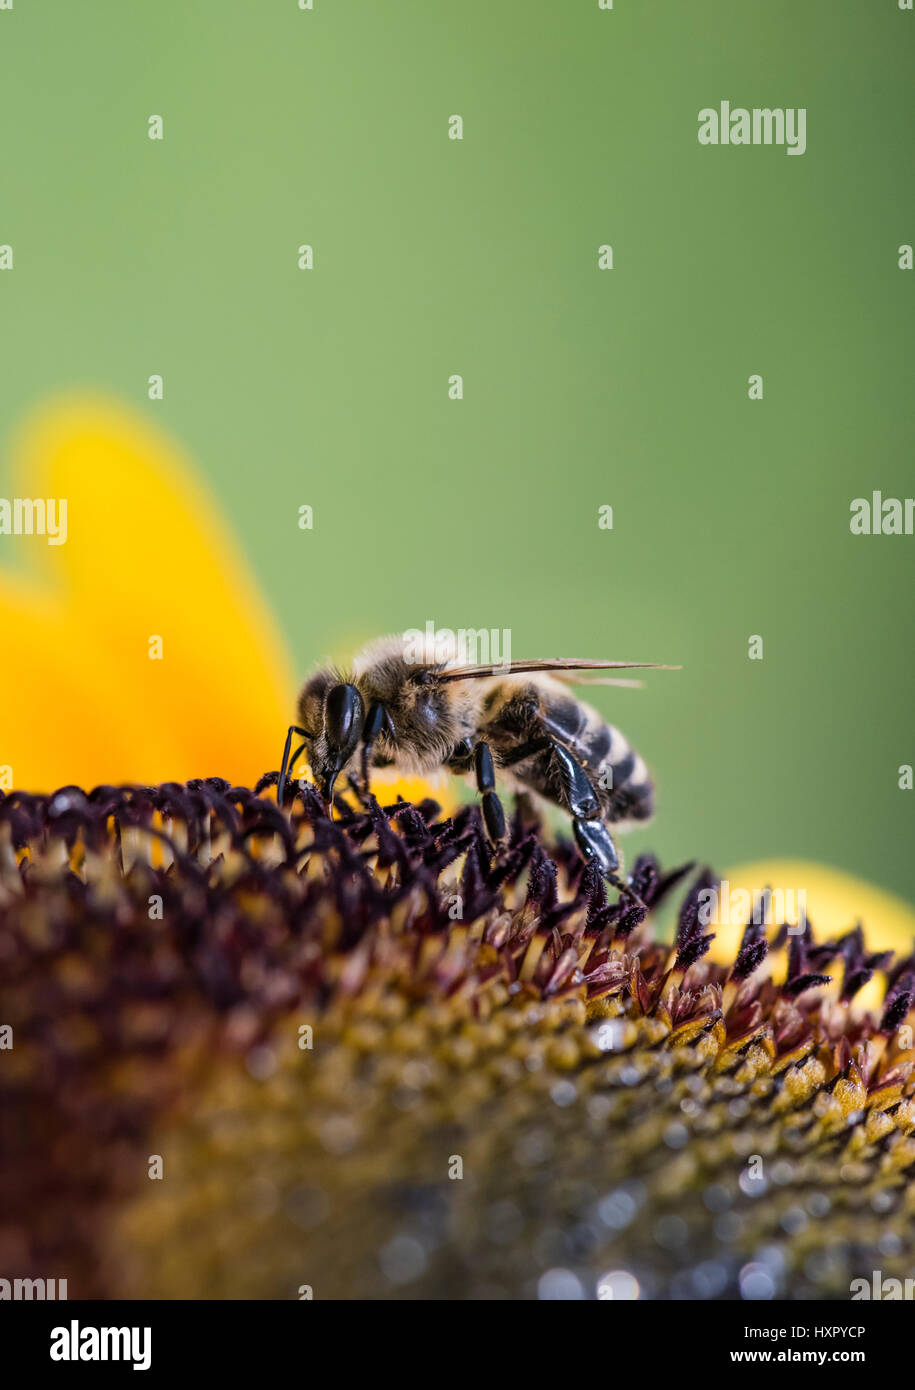 Extreme close-up of bee / honeybee (Apis mellifera) insect collecting pollen of a sunflower - Stock Image